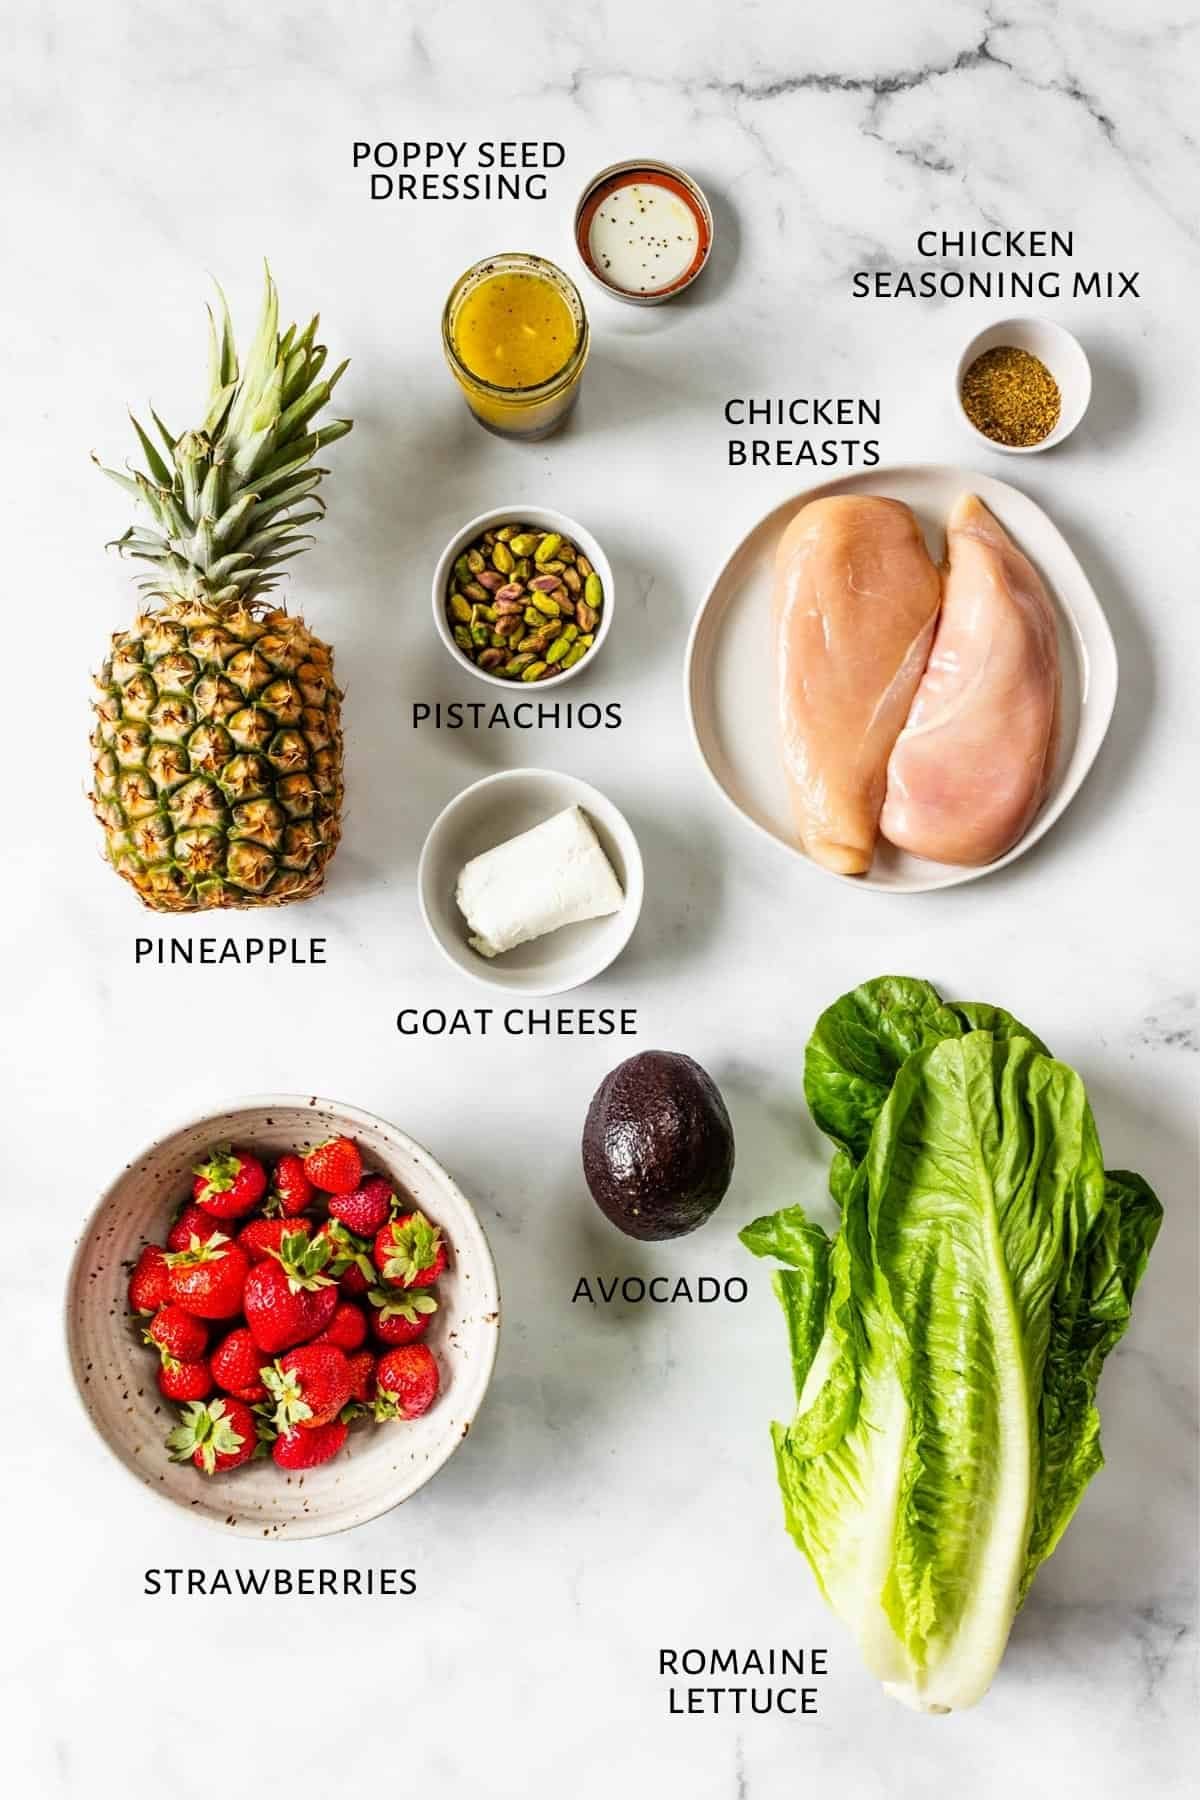 Ingredients for strawberry chicken salad are laid out on a marble countertop.